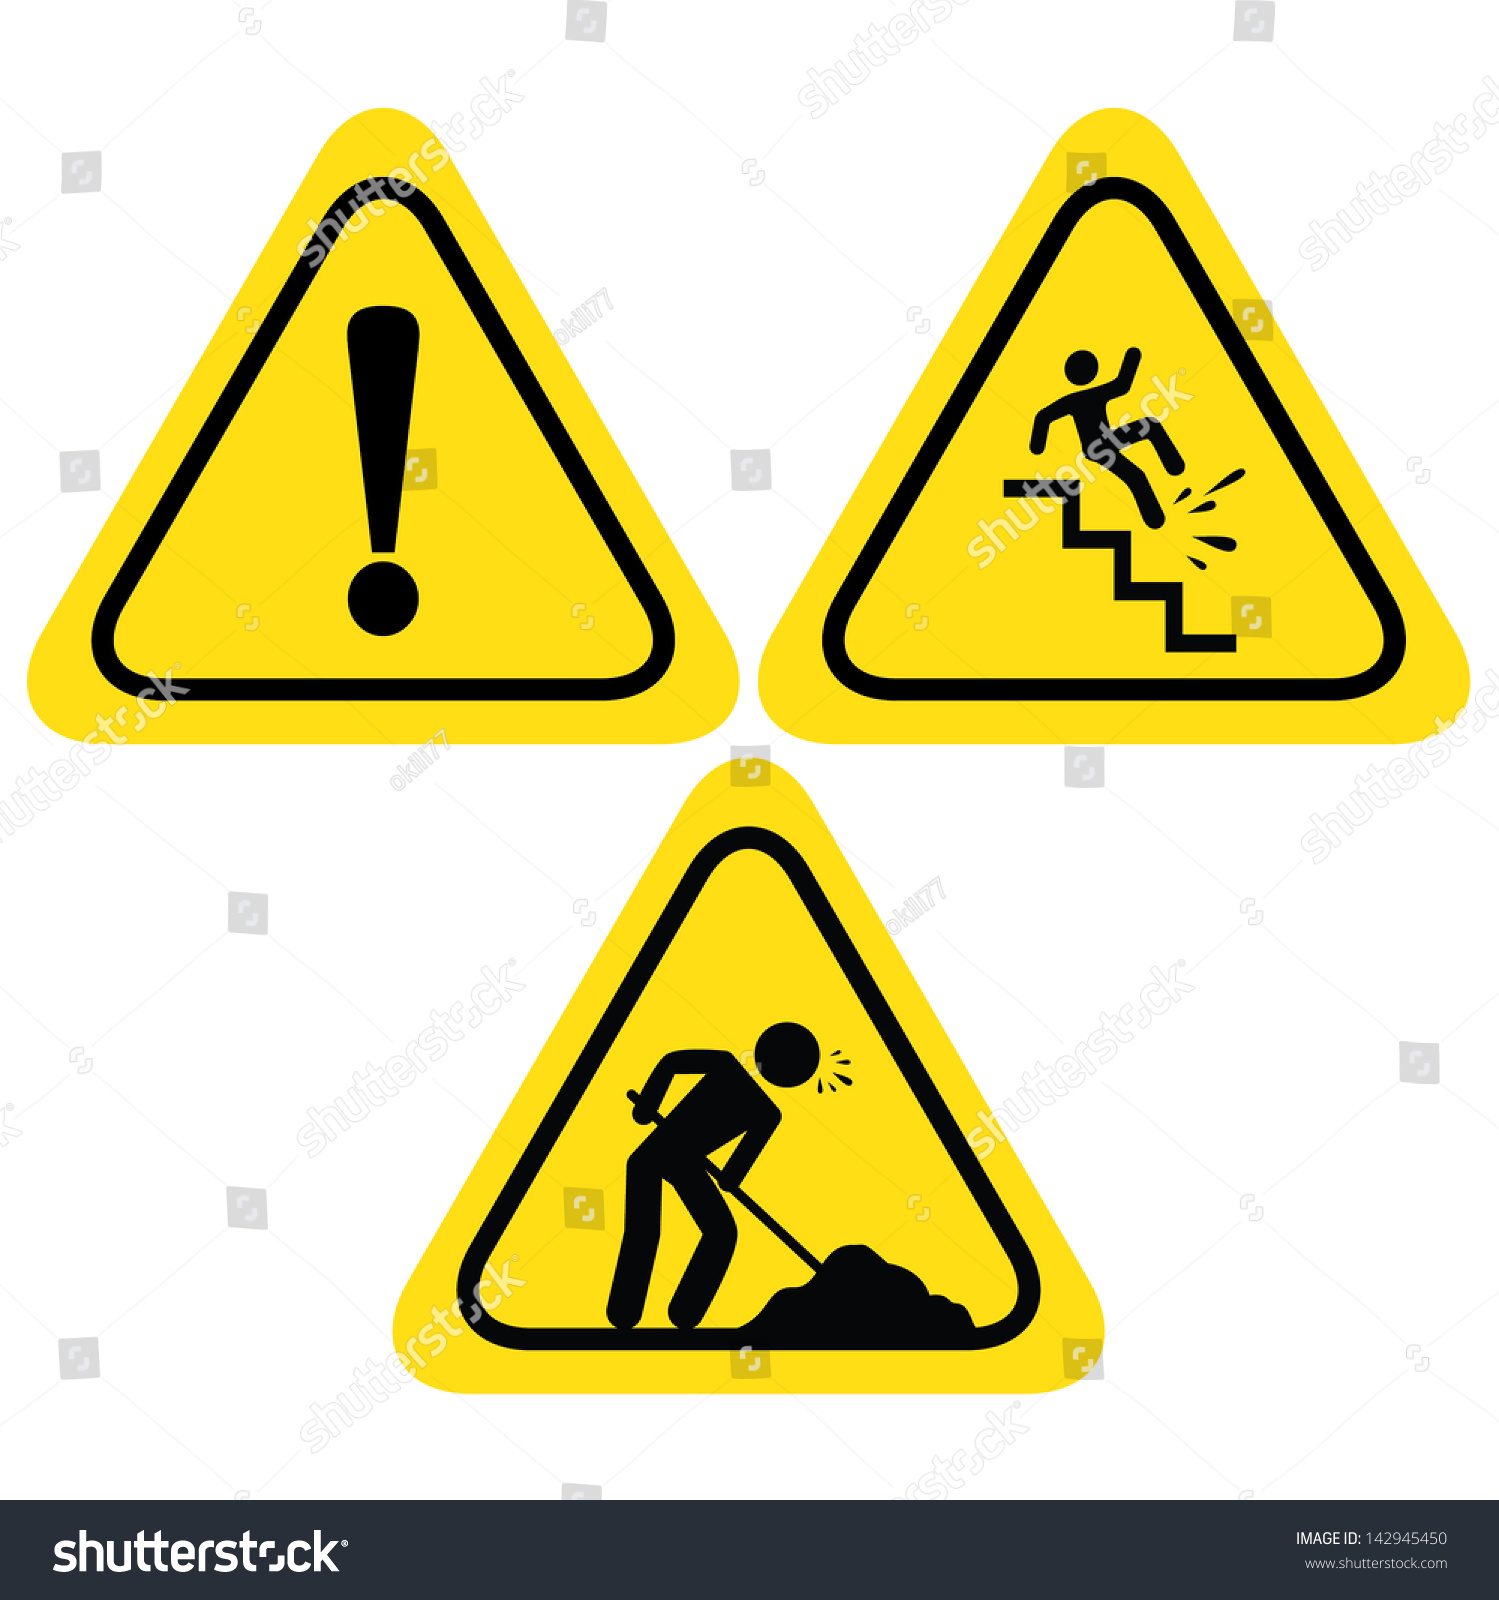 Construction Images Stock Photos amp Vectors  Shutterstock